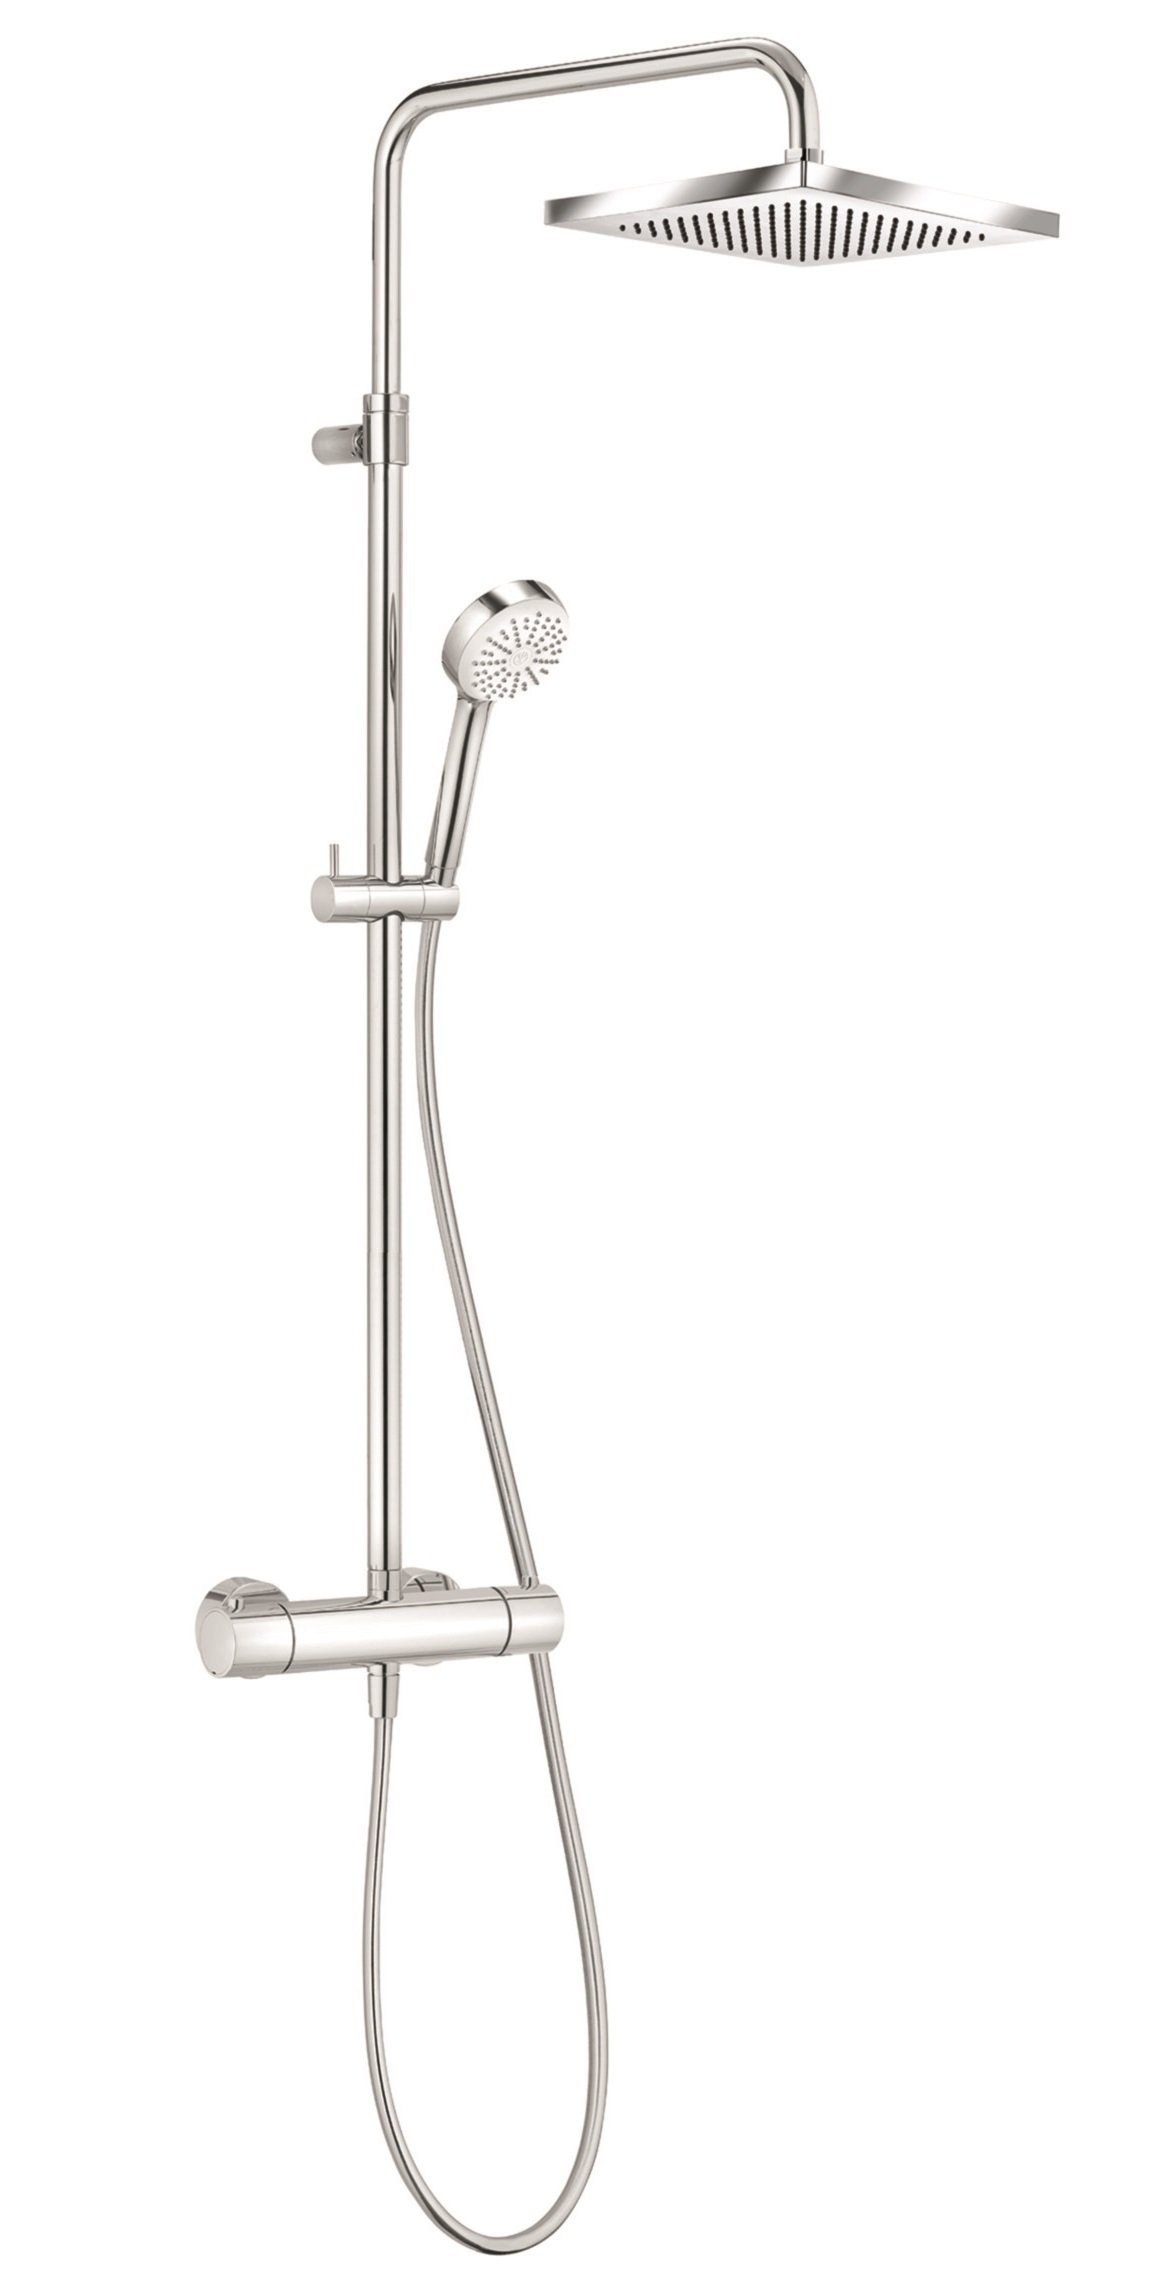 Coloana de dus Kludi Logo 1S Dual Shower cu baterie de dus termostatata imagine